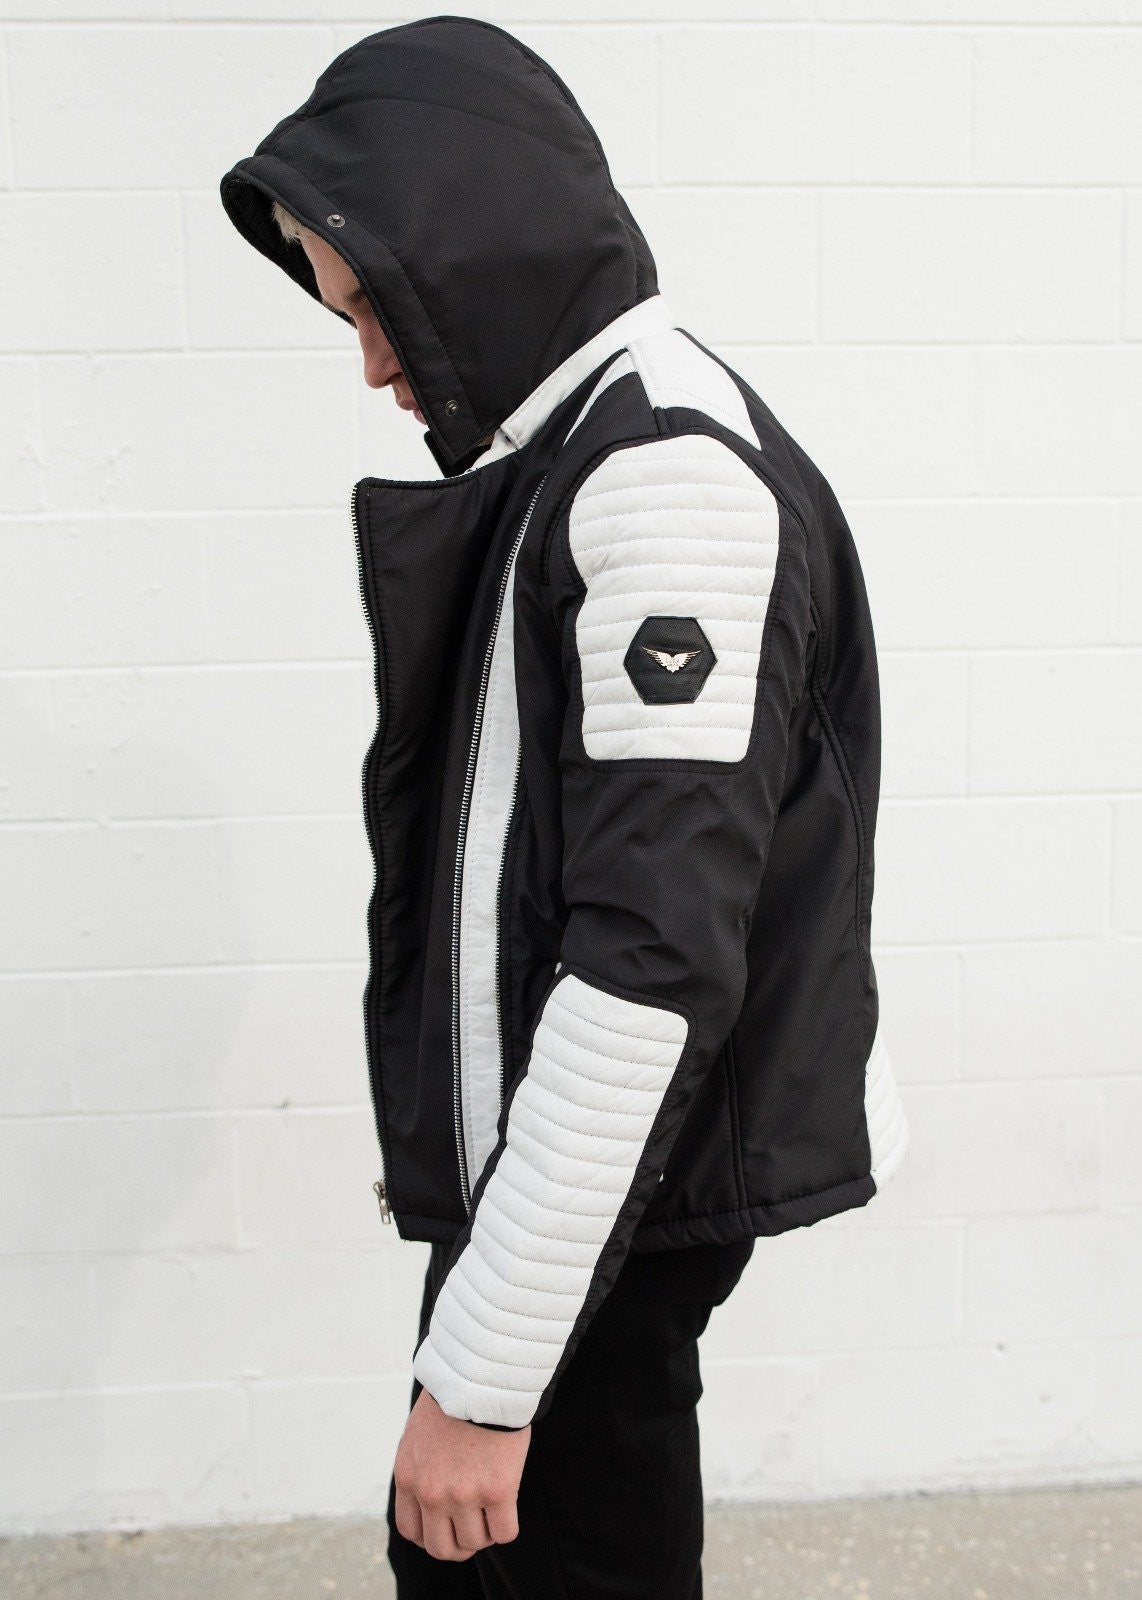 Mens Ninja Leather Jacket Black White Contrast Quilted Moto